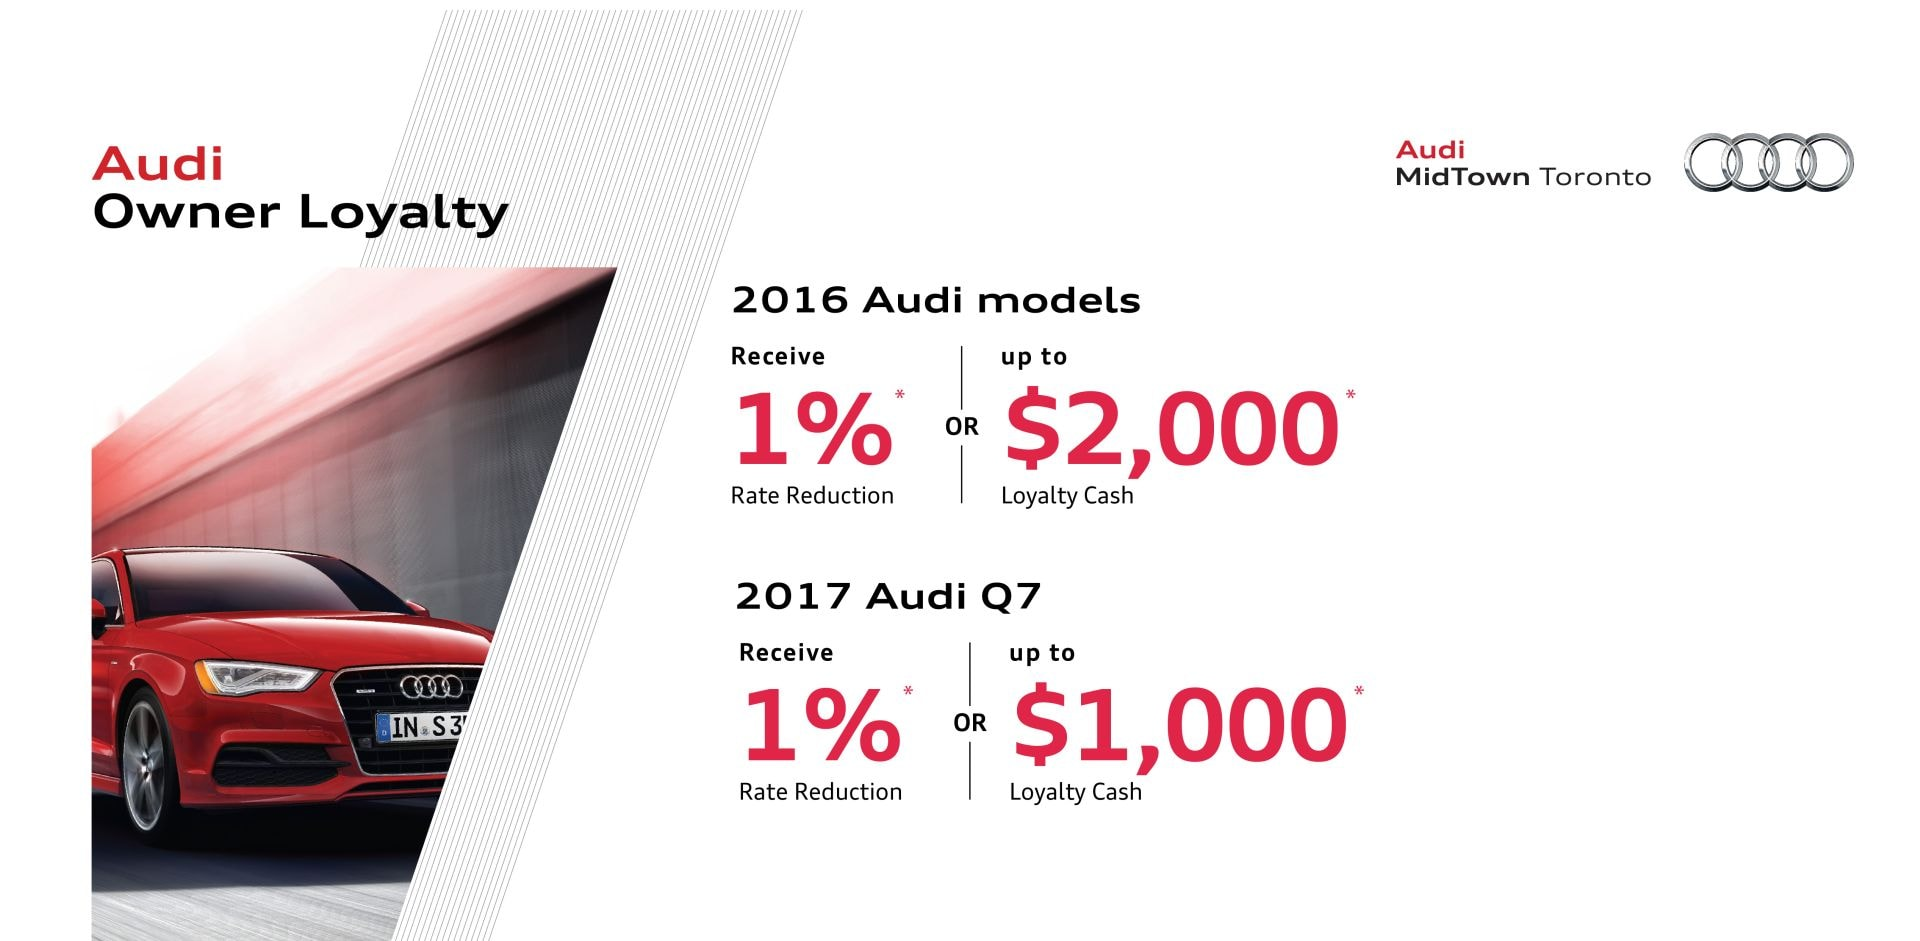 audi midtown toronto vehicles for sale in toronto on